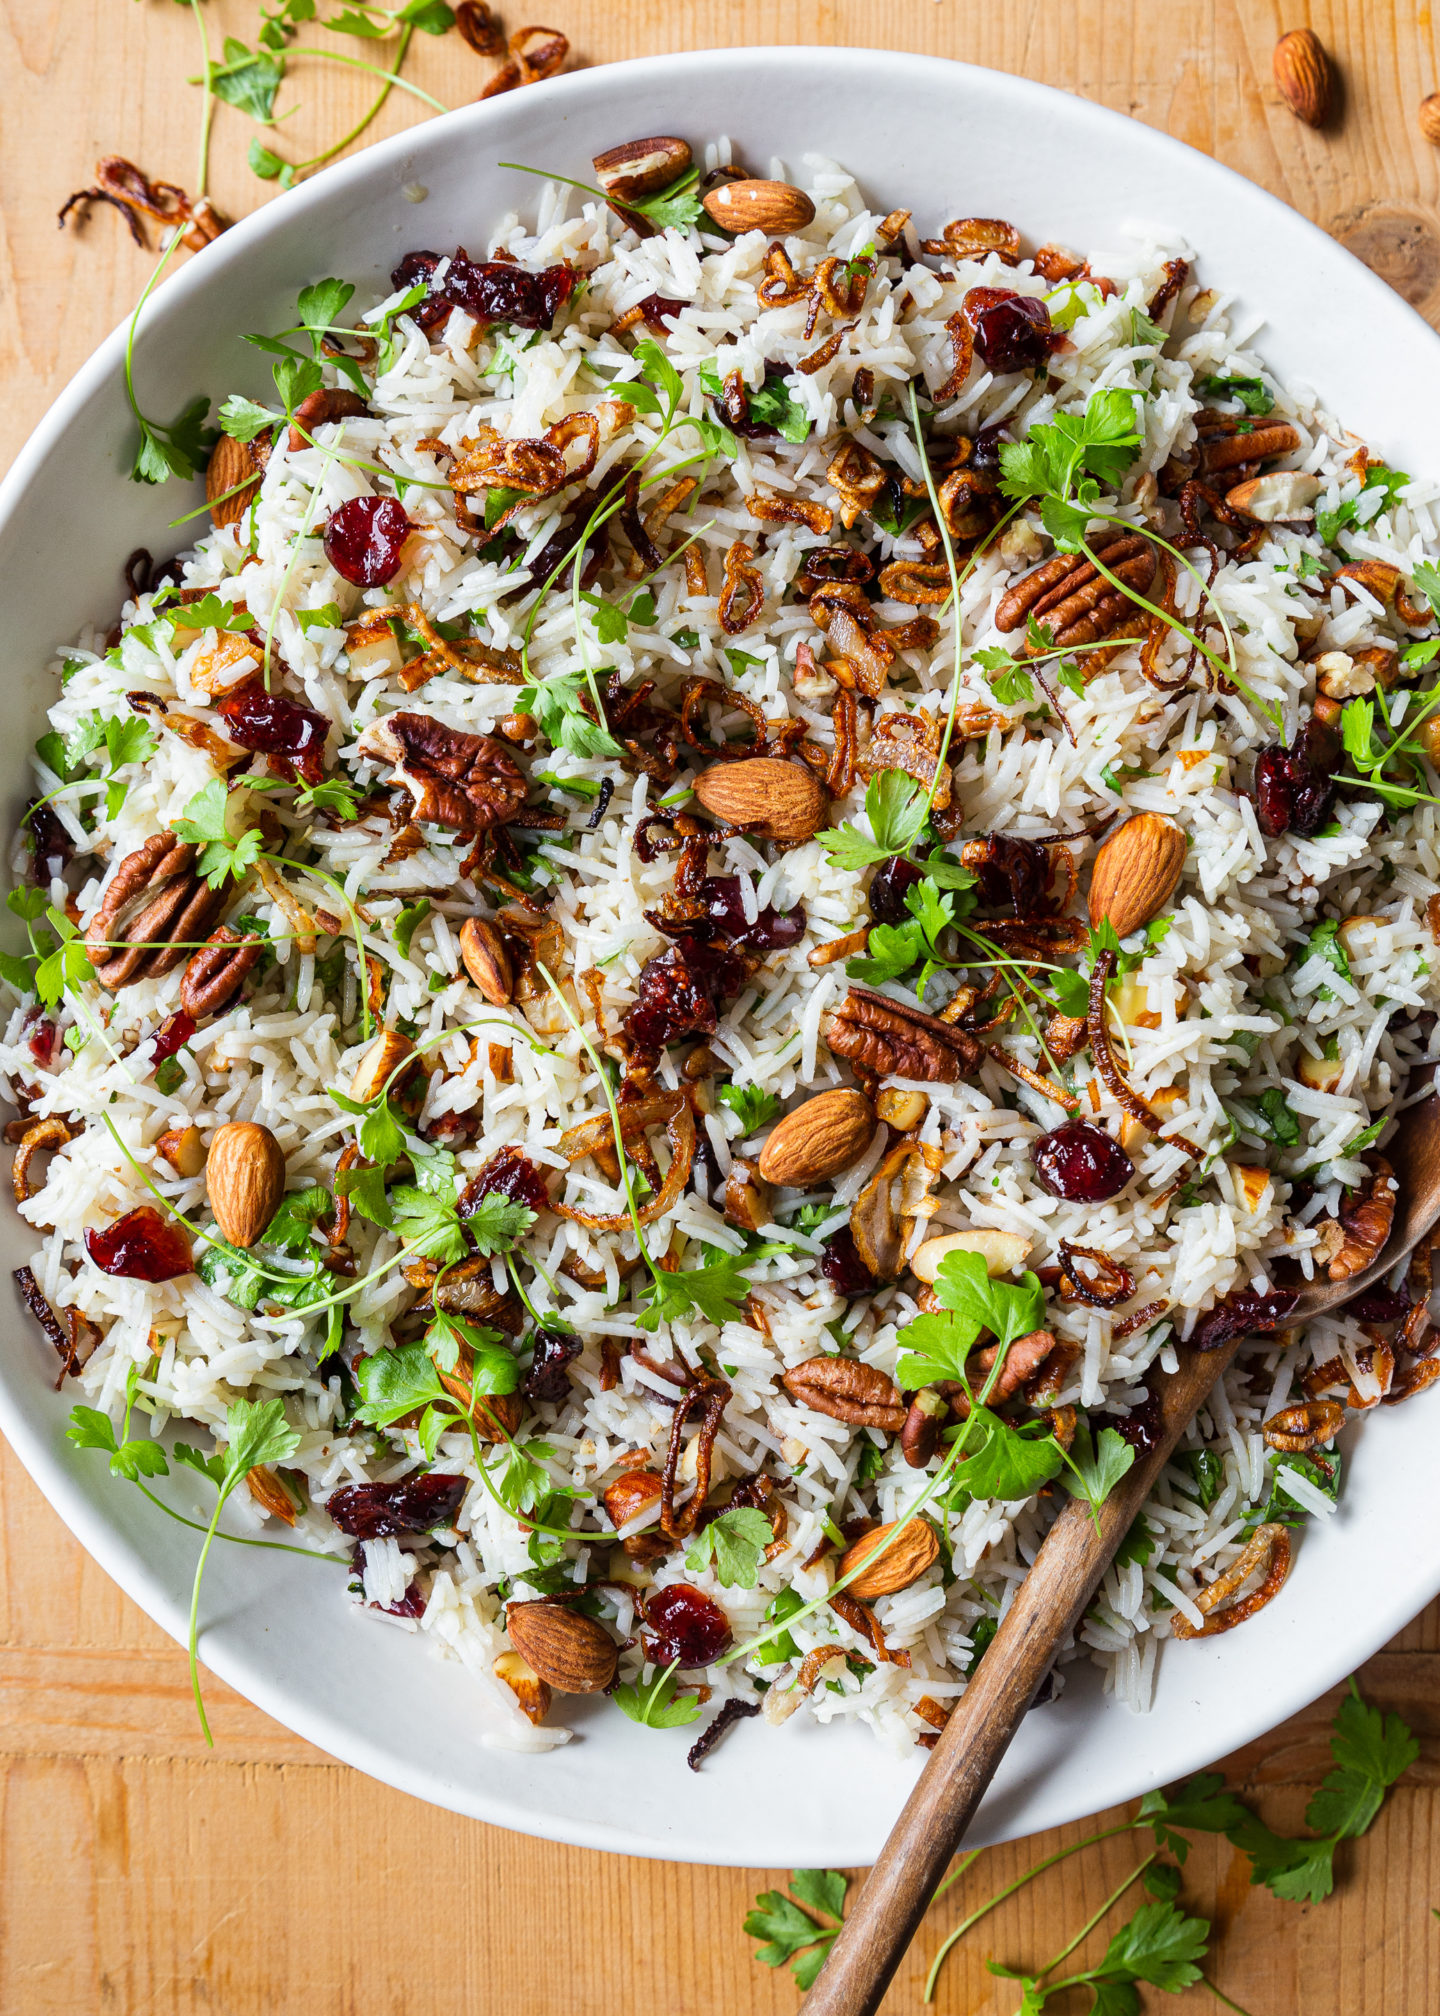 Cranberry Rice with Crispy Shallots and Nuts